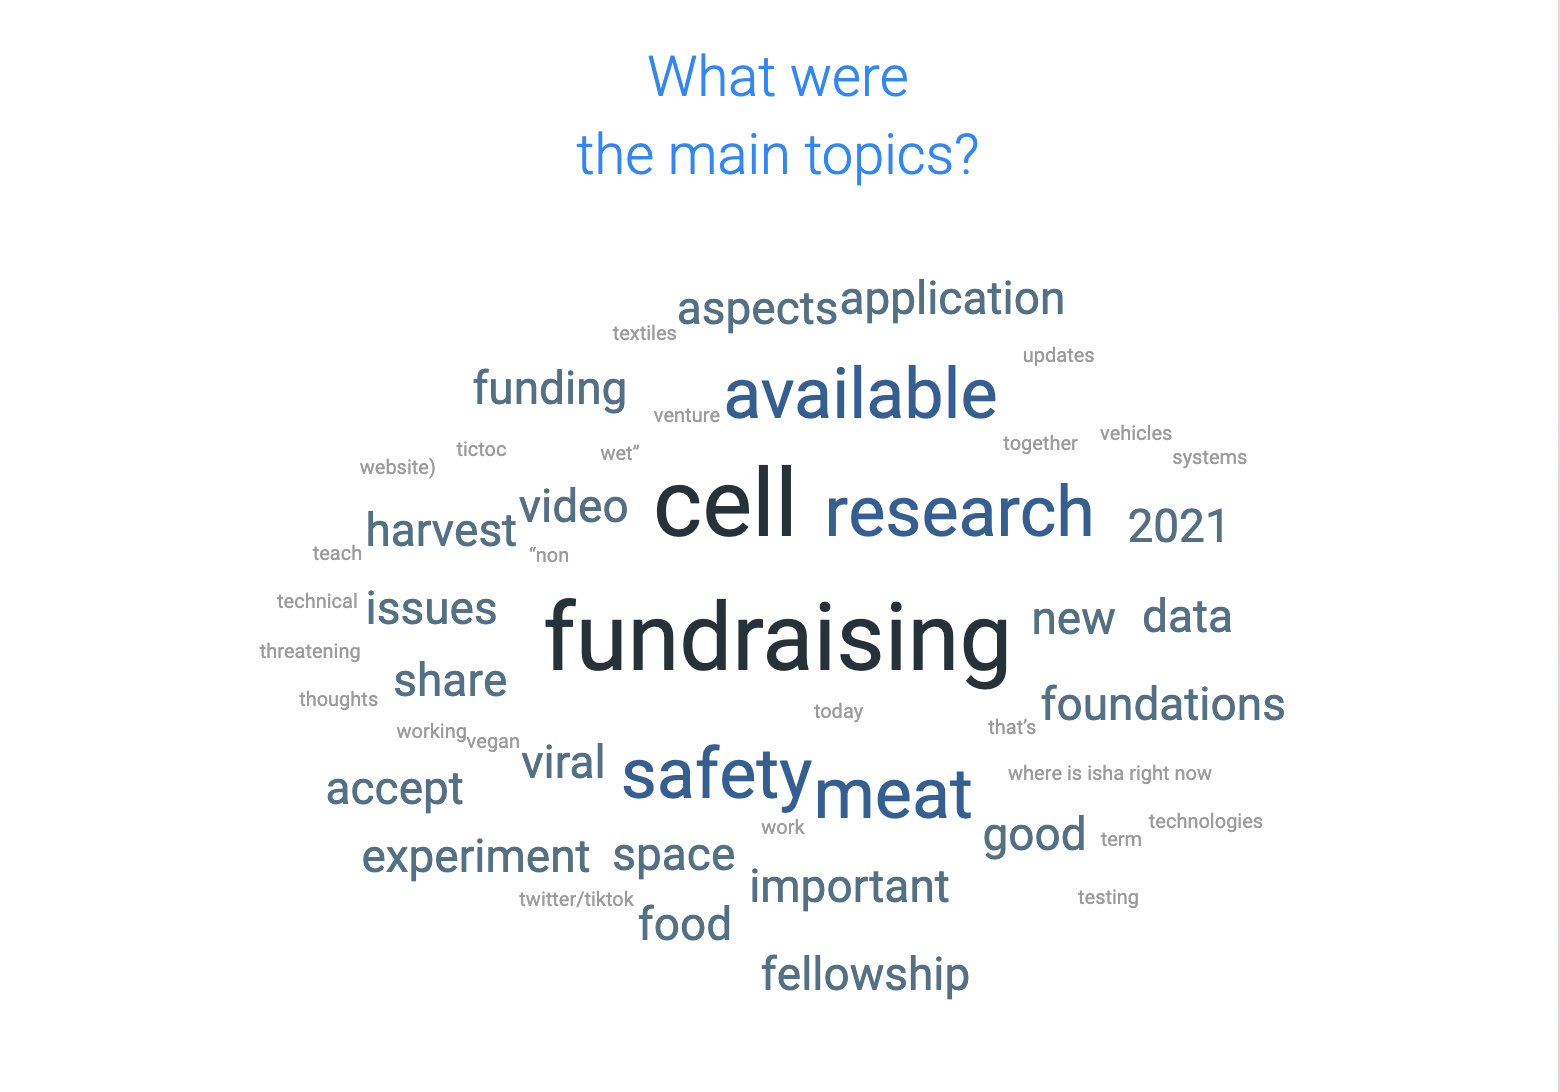 shows the main topics, including cell fundraising, research, safety, and whats happening in the next year